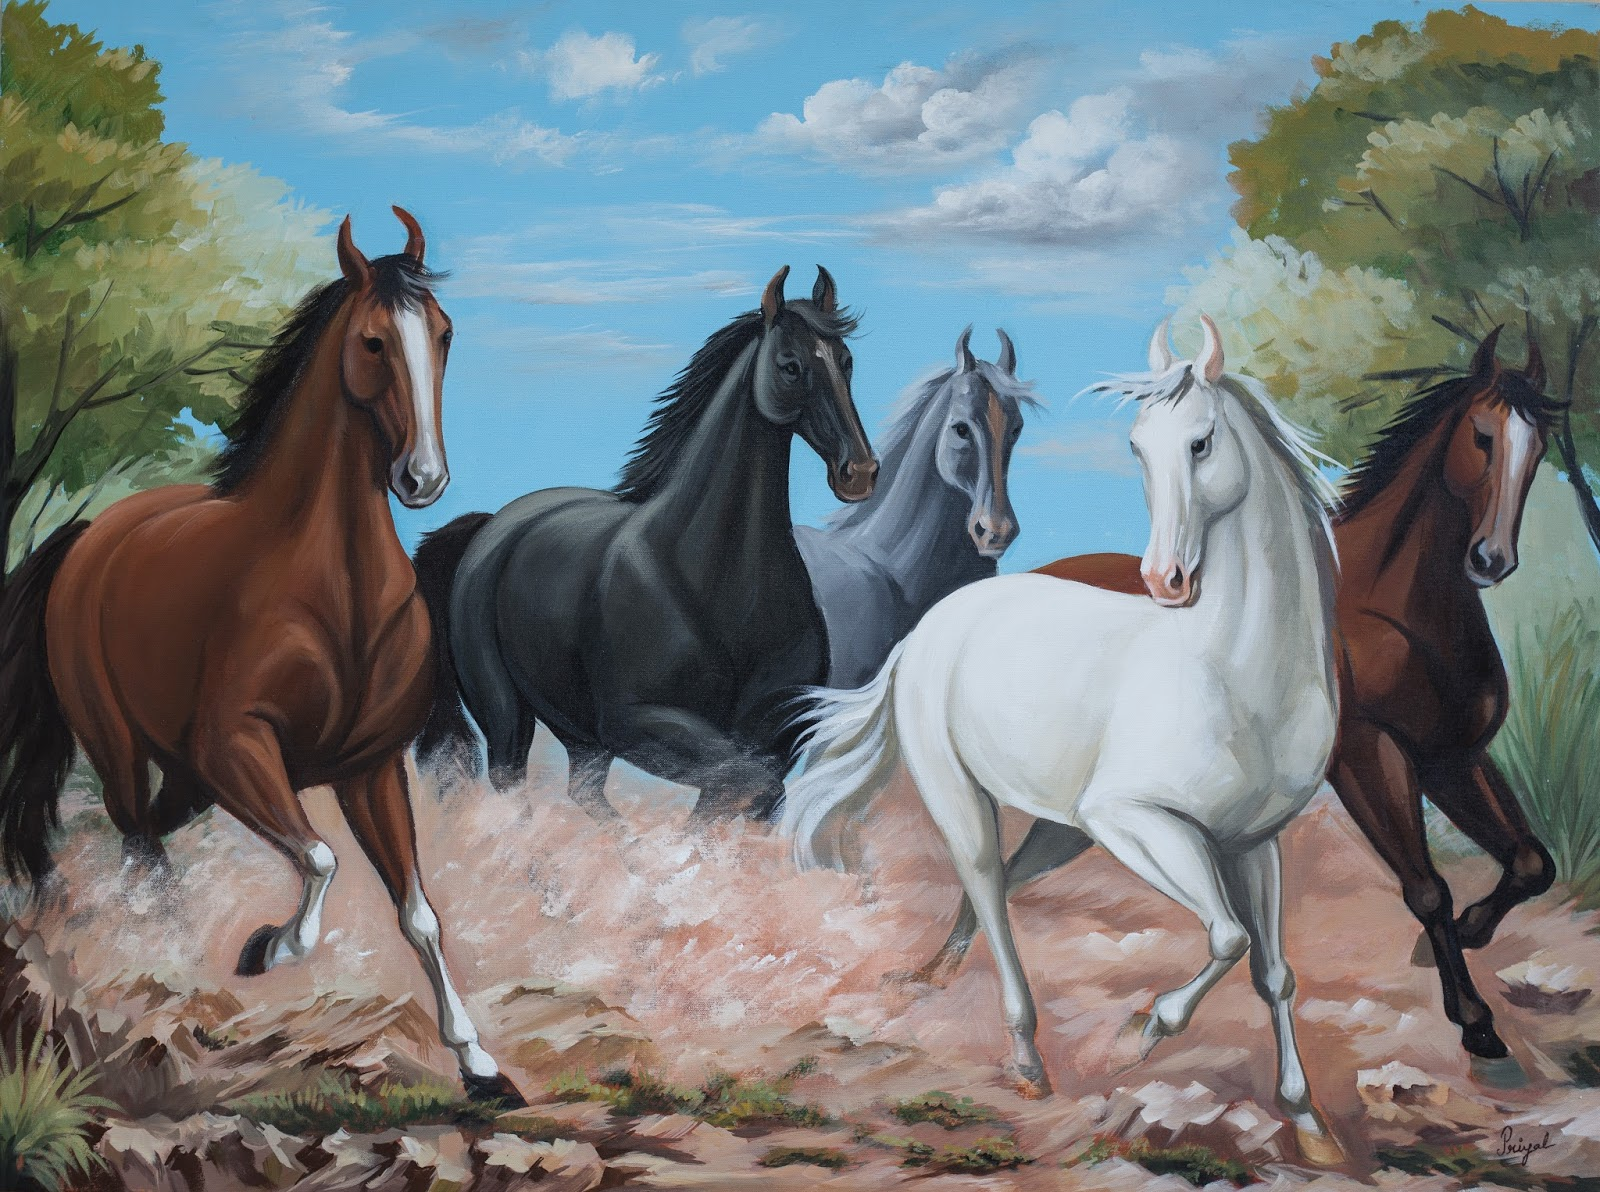 Seven Running Horse Wallpaper Running Horse Painting Vastu 853416 Hd Wallpaper Backgrounds Download